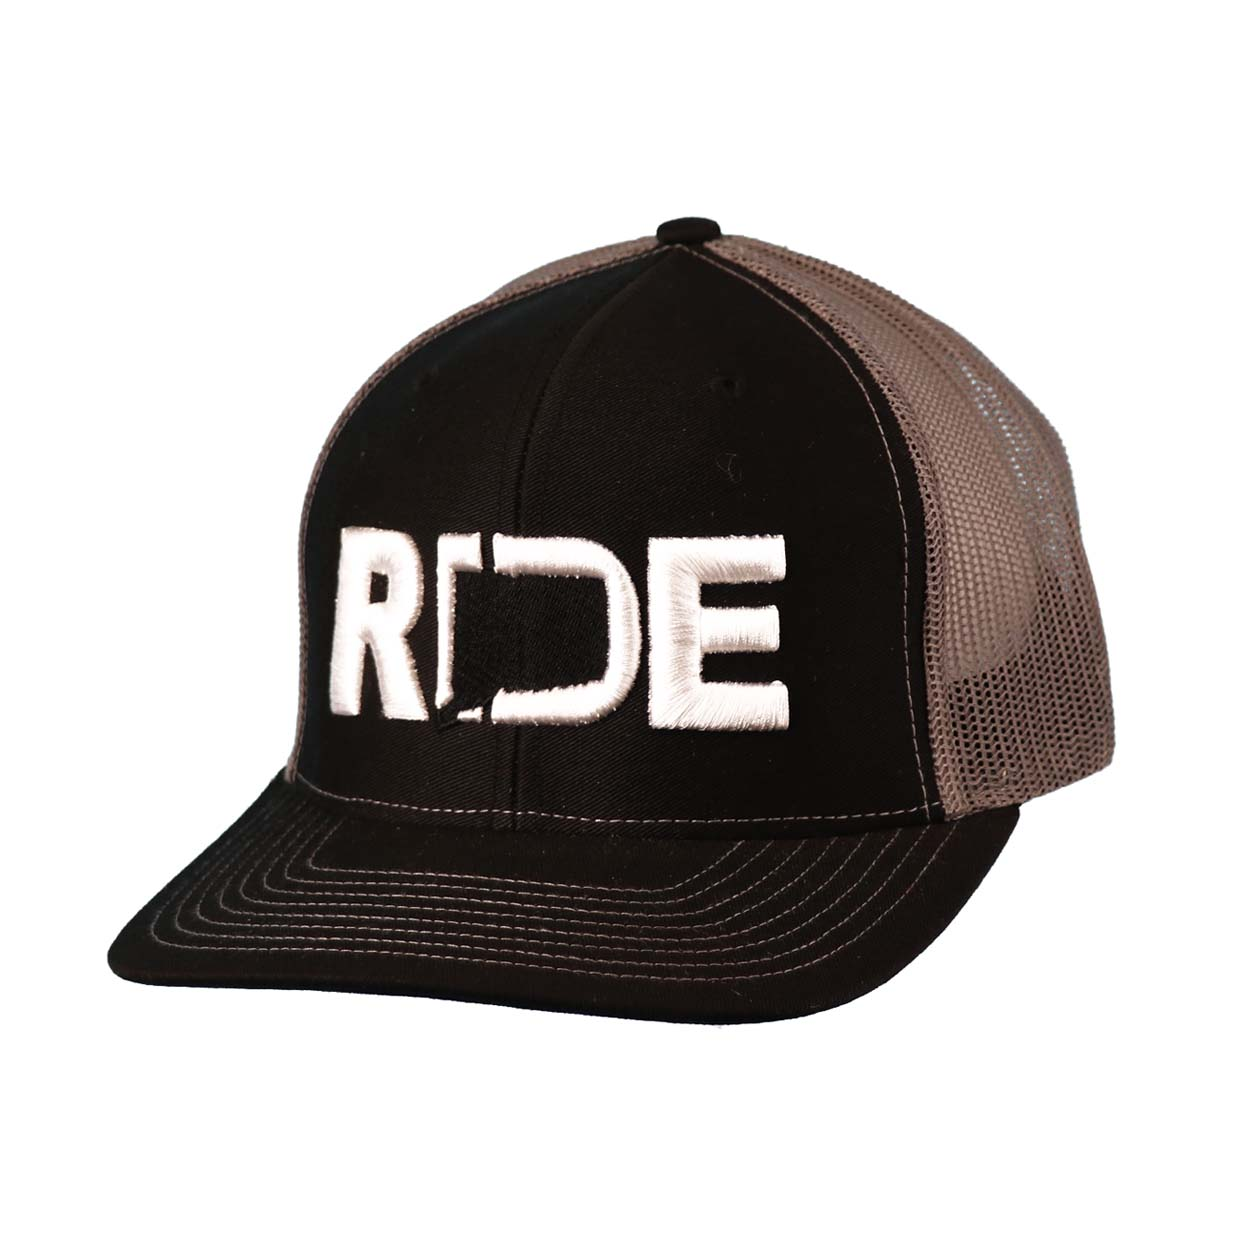 Ride Connecticut Classic Embroidered Snapback Trucker Hat Black/White